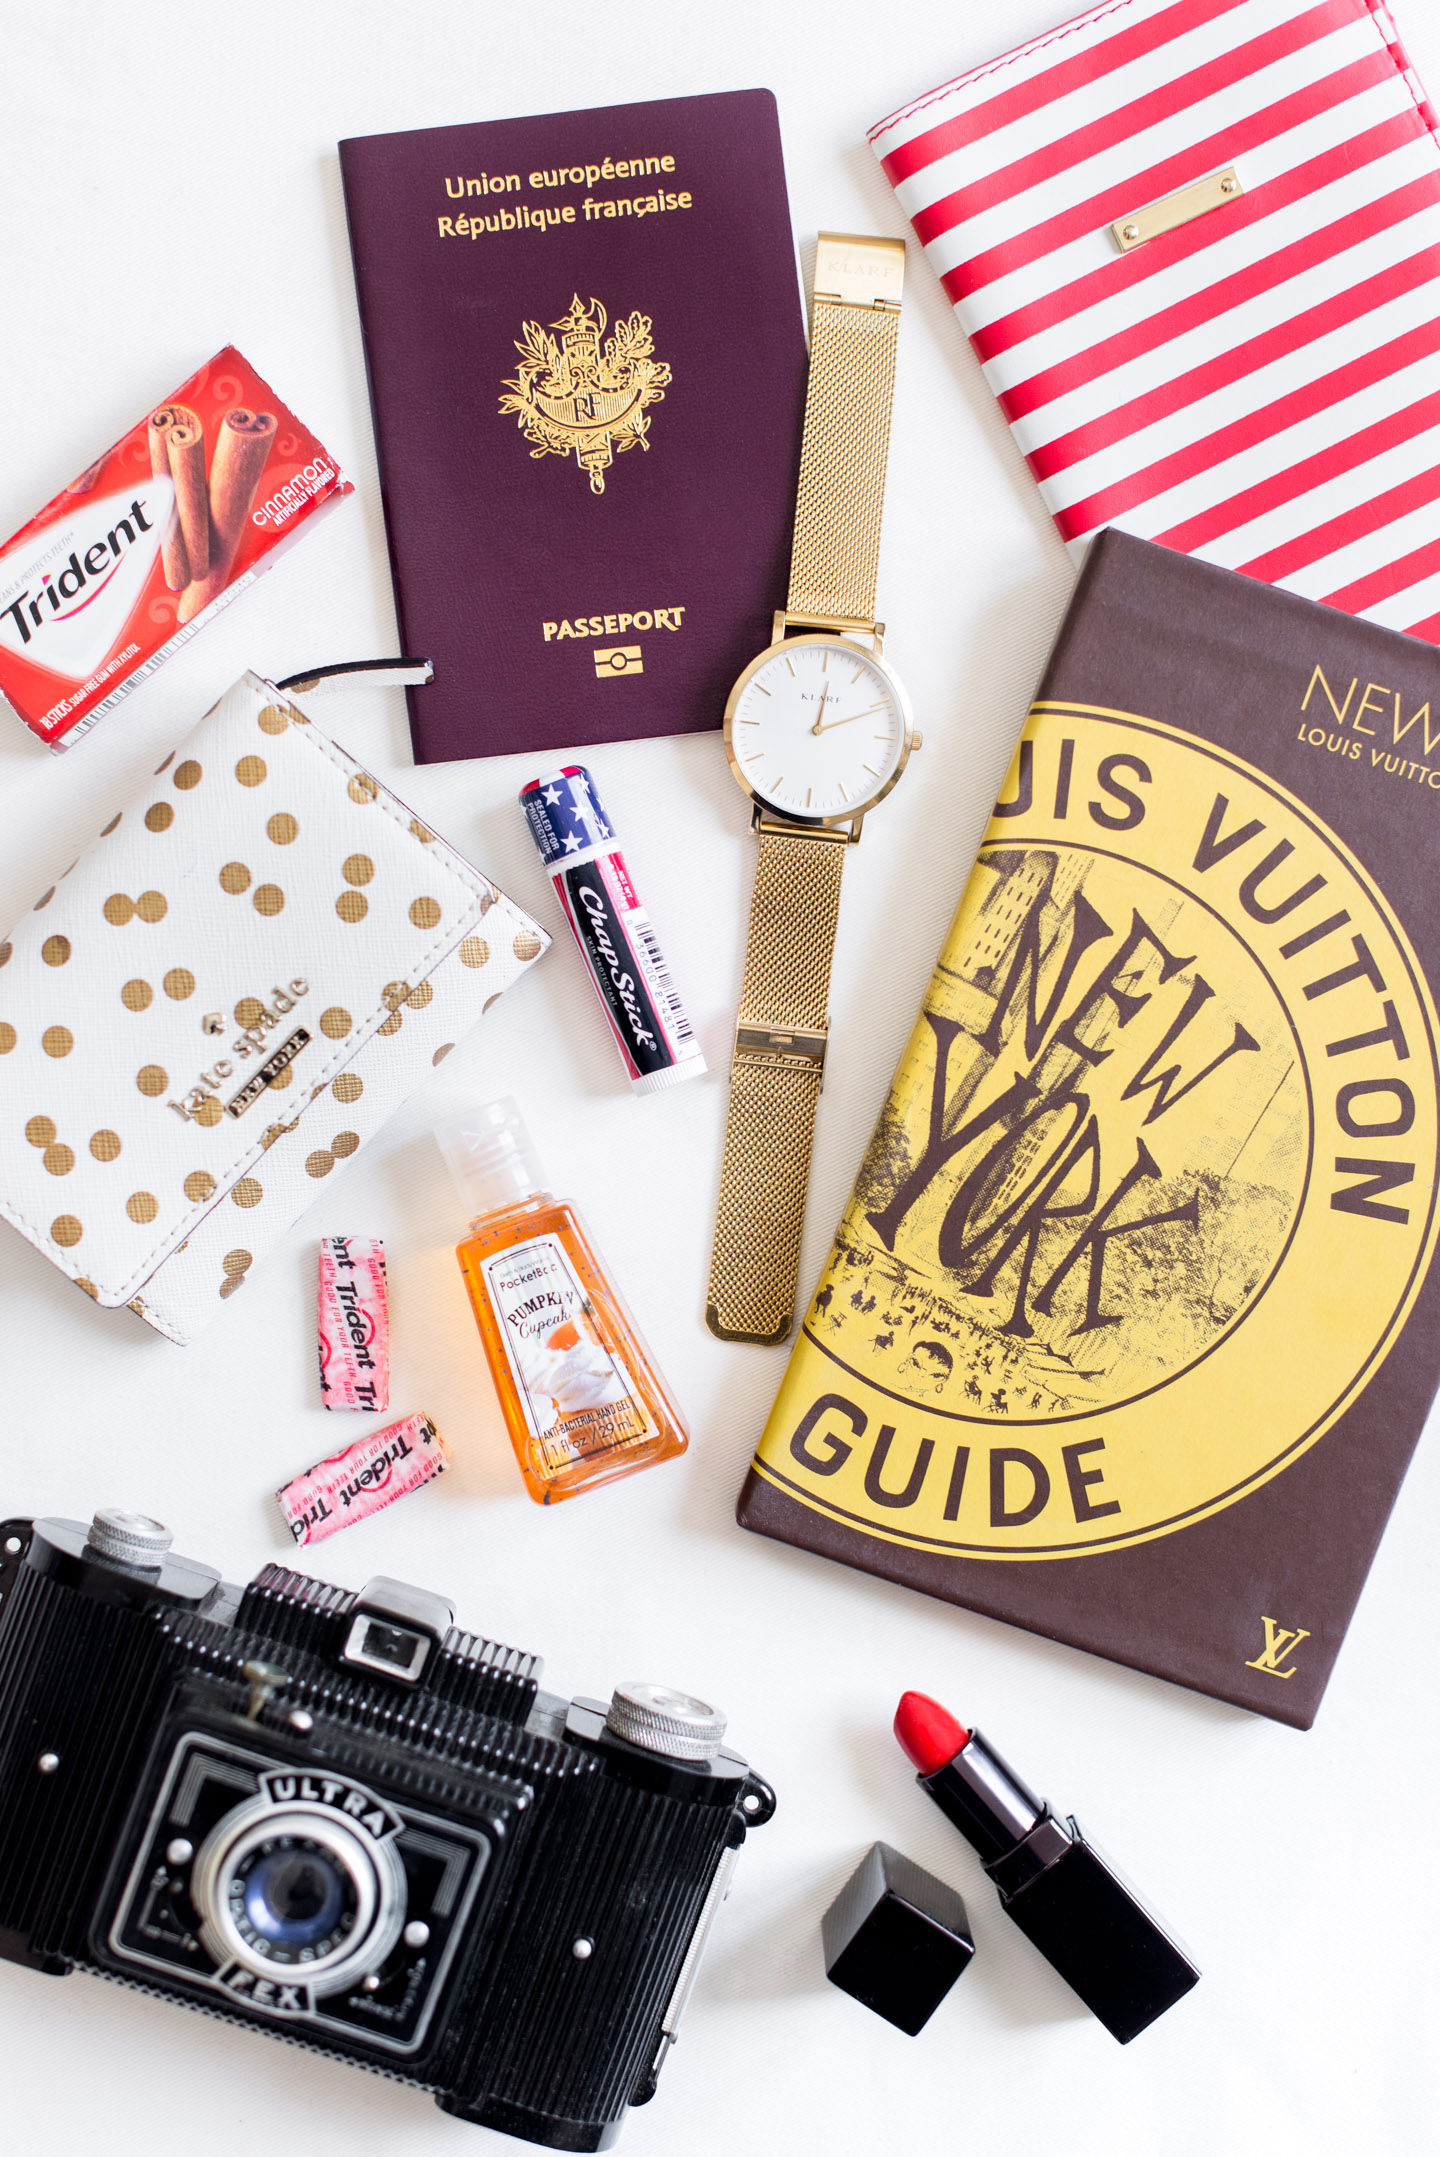 Blog-Mode-And-The-City-Lifestyle-Cinq-Petites-Choses-173-voyage-USA01